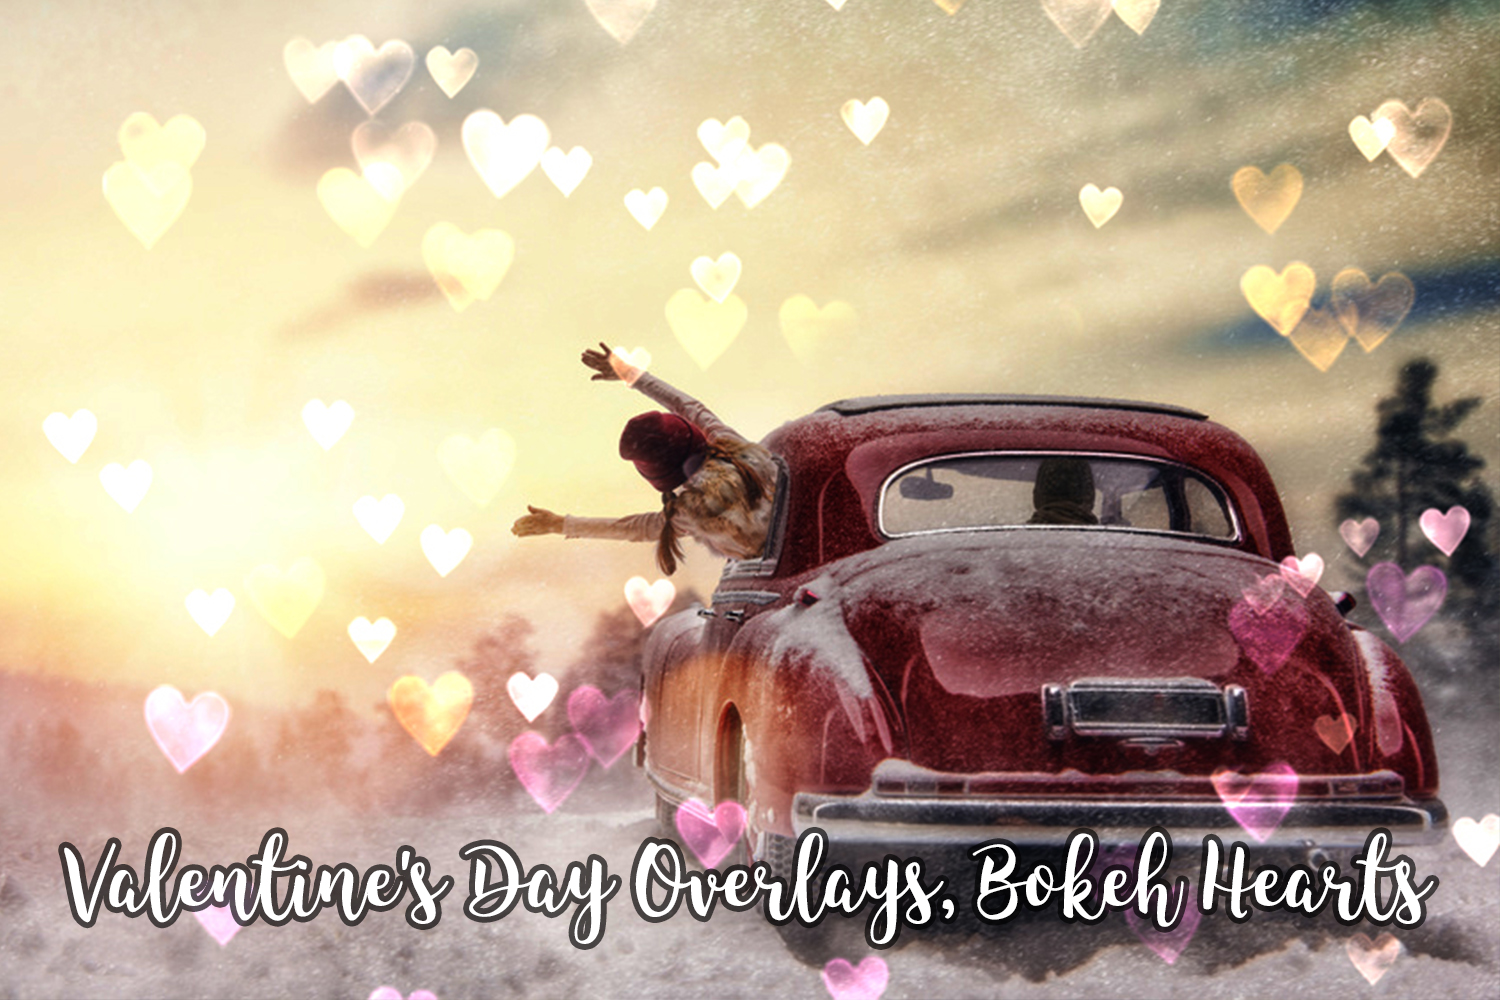 Valentine's Day Overlays, Bokeh Hearts Overlays example image 7